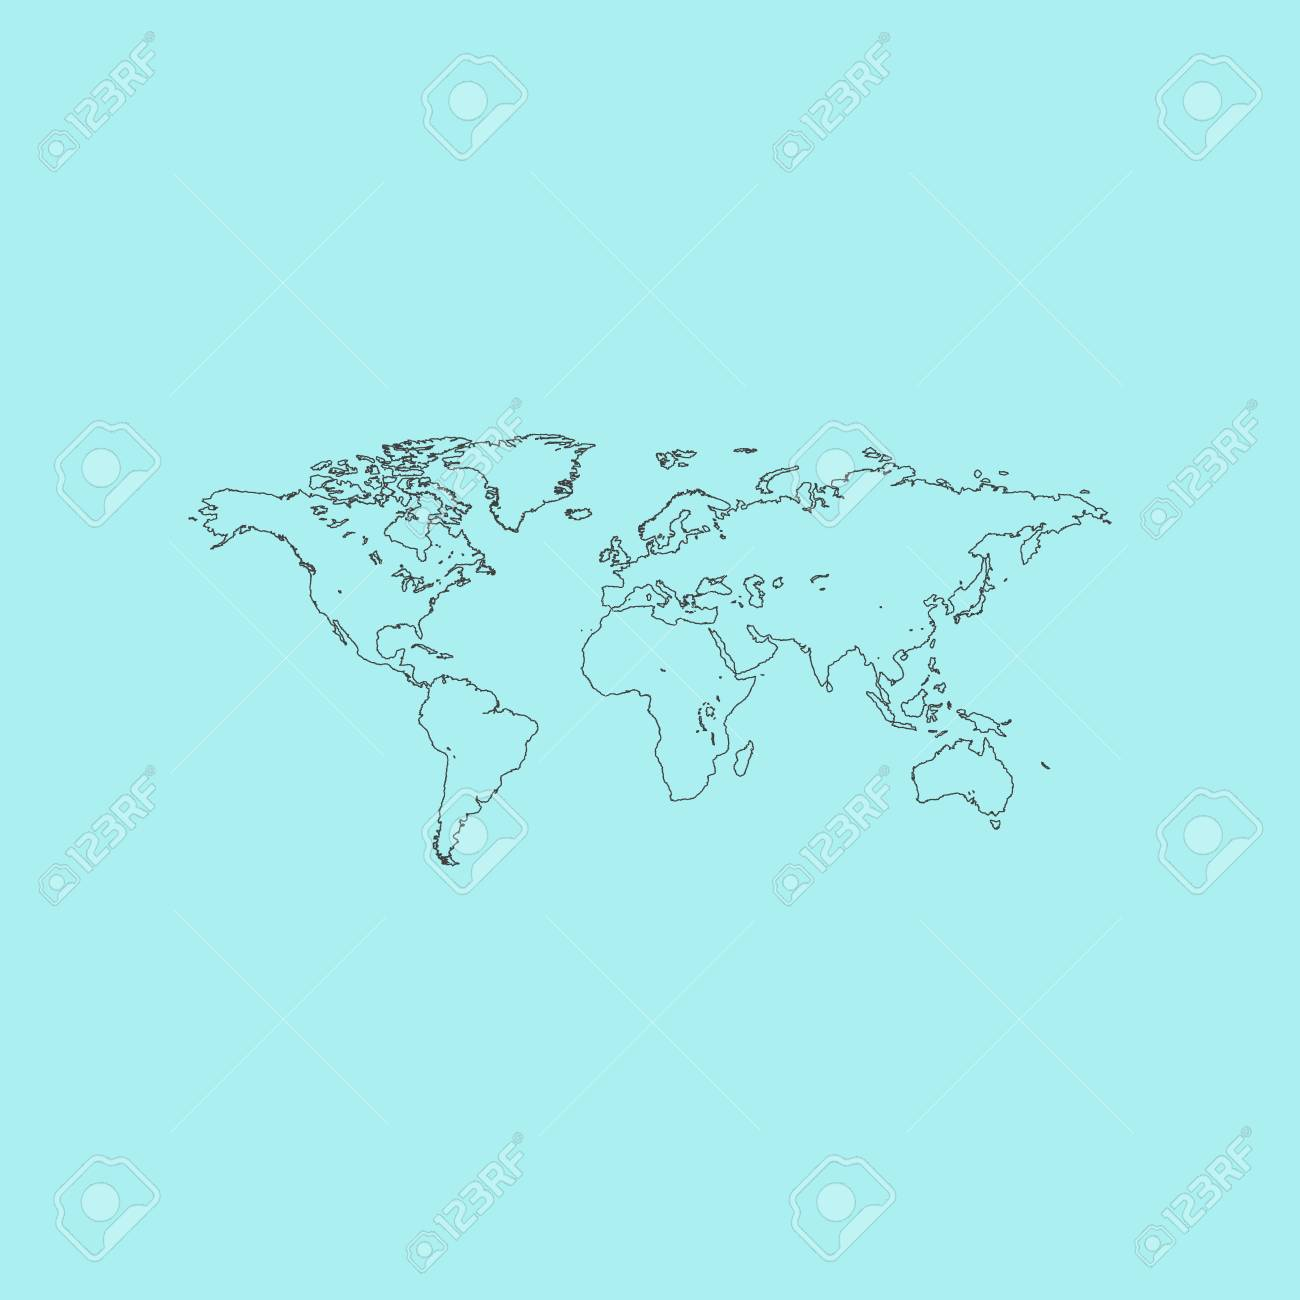 Map Of The World Simple.Map Of The World Simple Outline Flat Vector Icon Isolated On